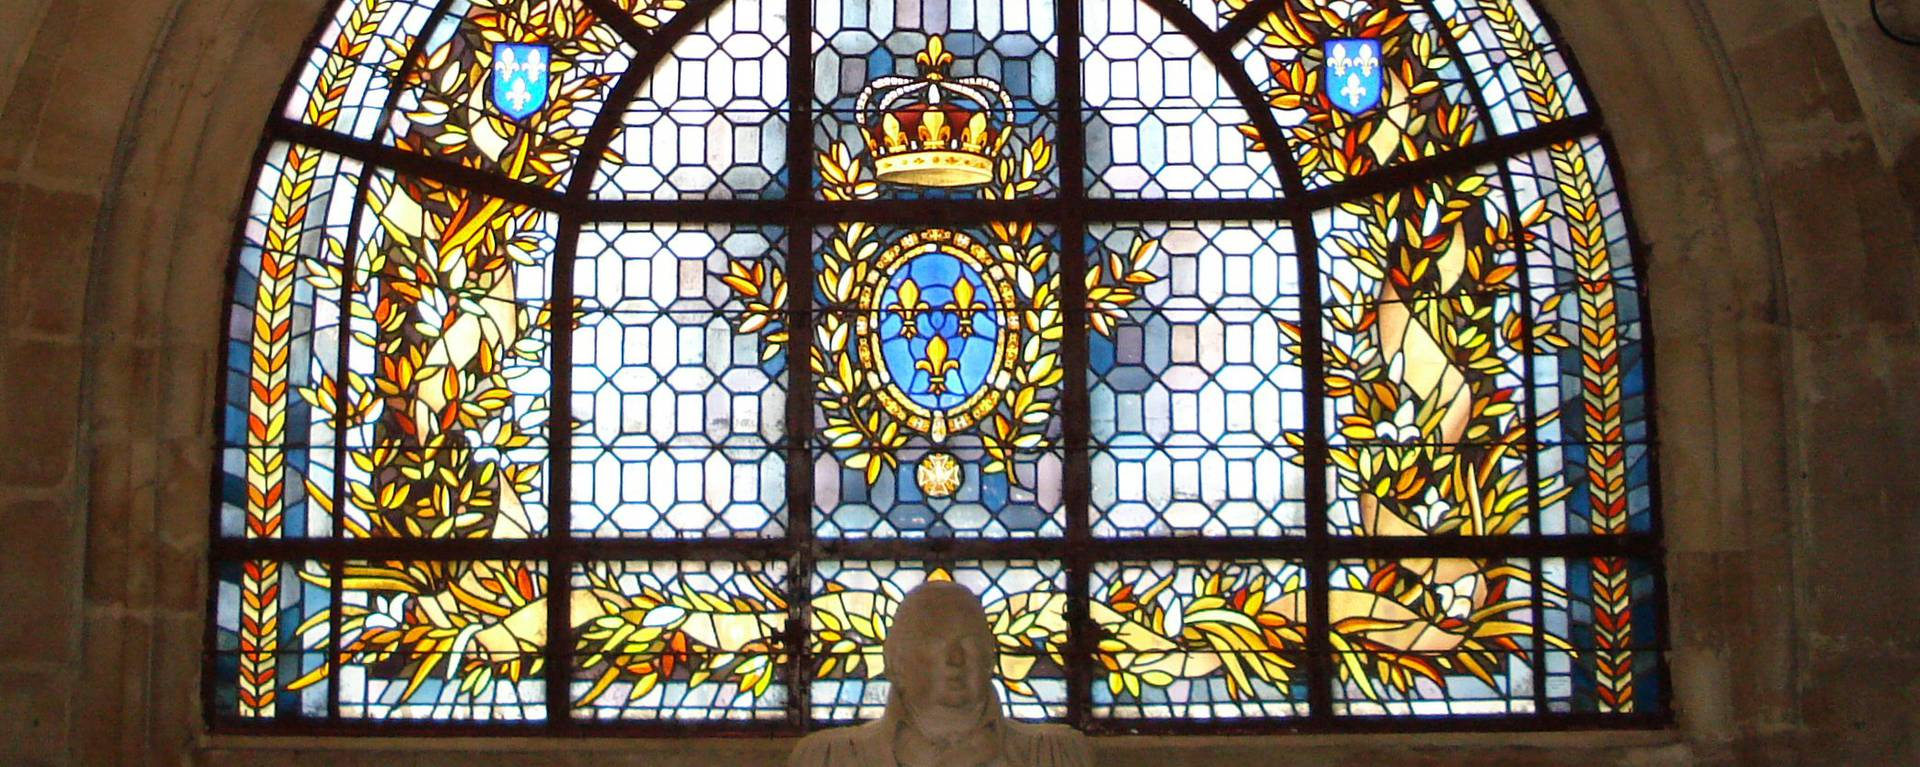 stained glass in the crypt of the Basilica- © Office de Tourisme de Plaine Commune Grand Paris